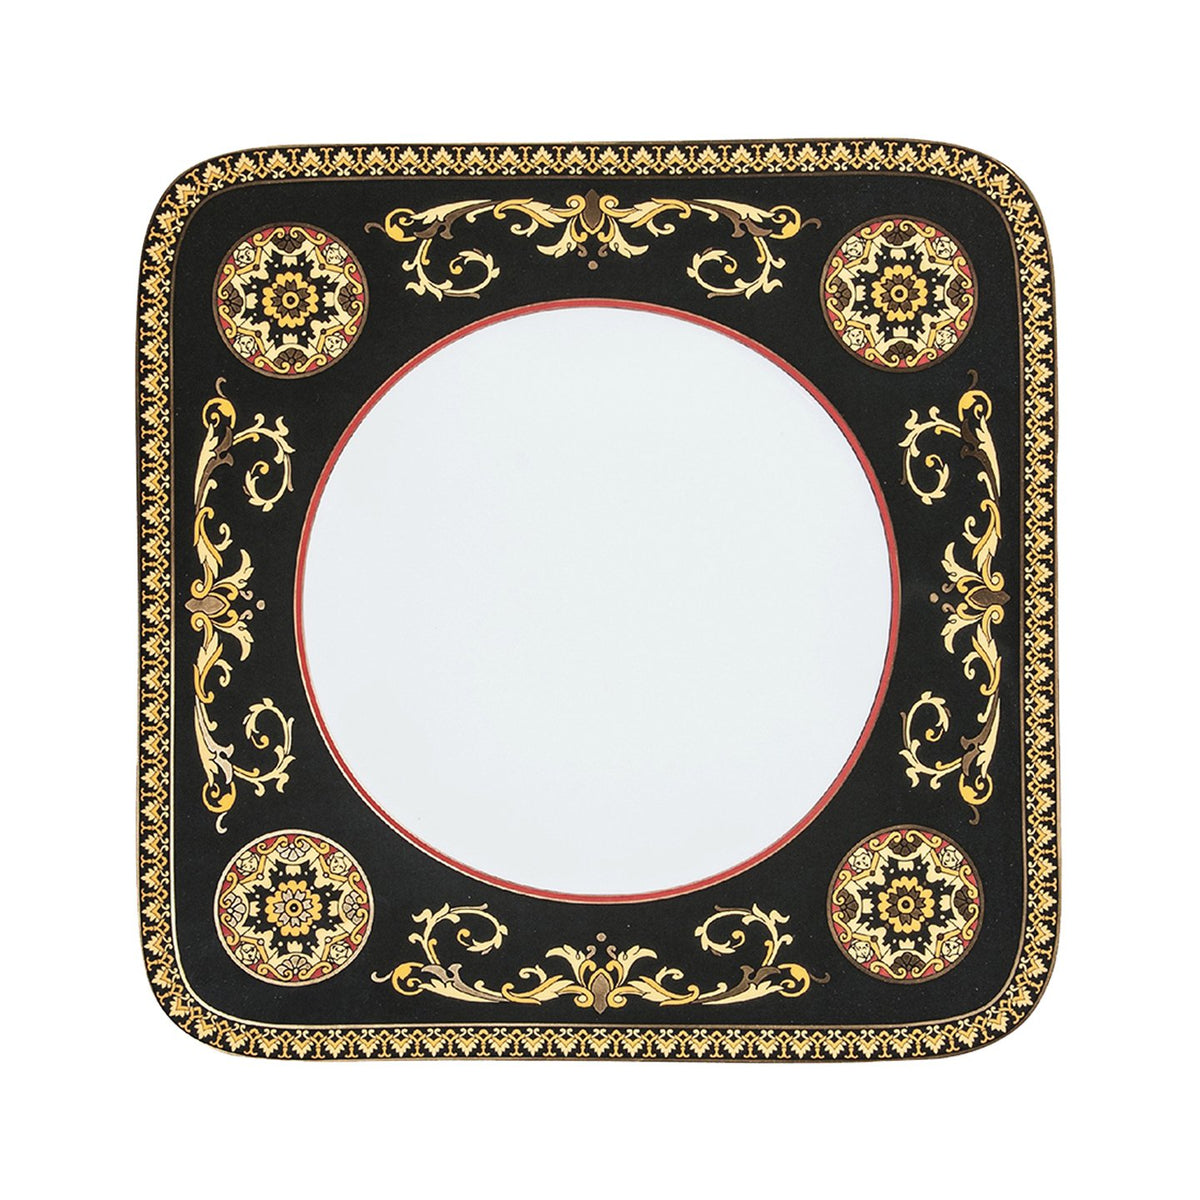 Medusa Red Porcelain Dinner Plate Square